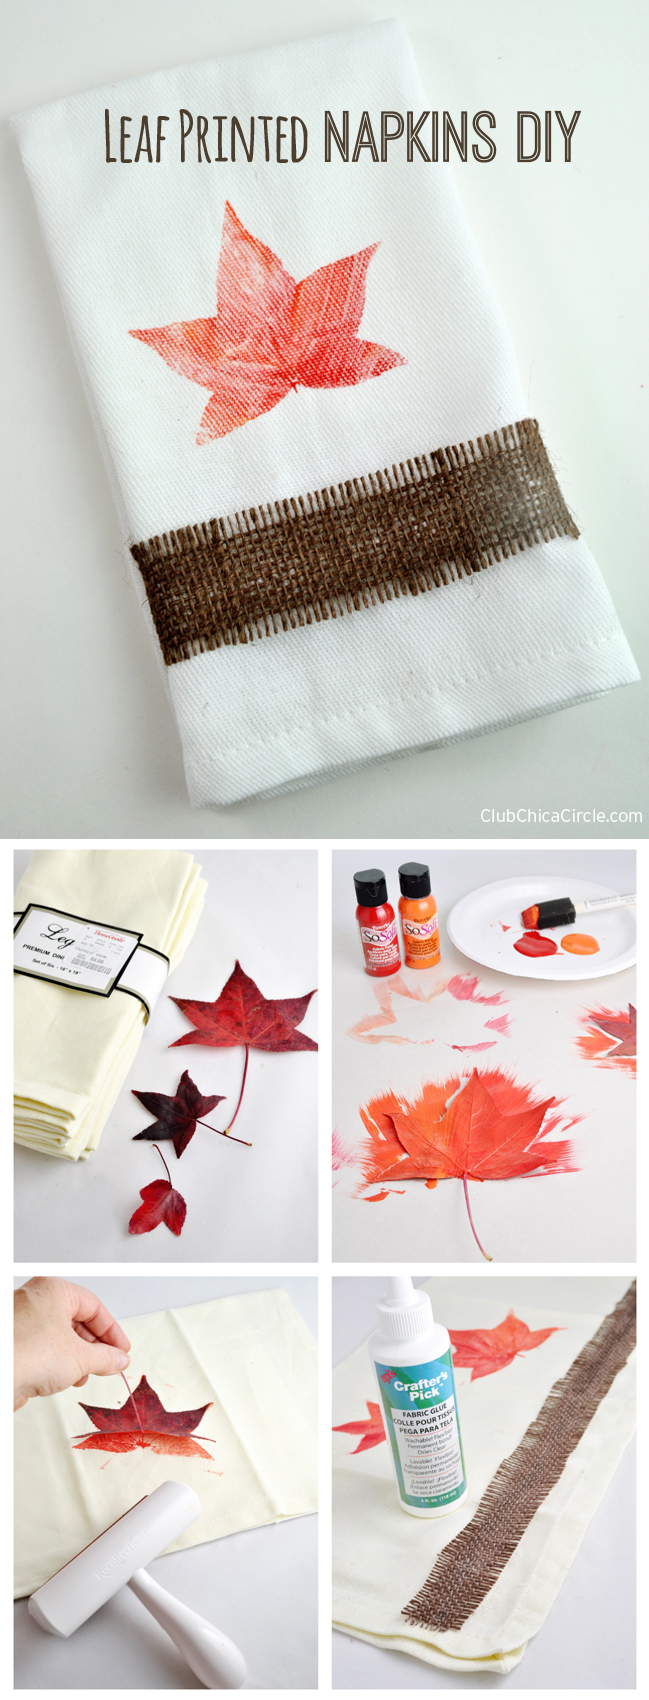 Leaf Printed Napkins DIY and Craft Idea